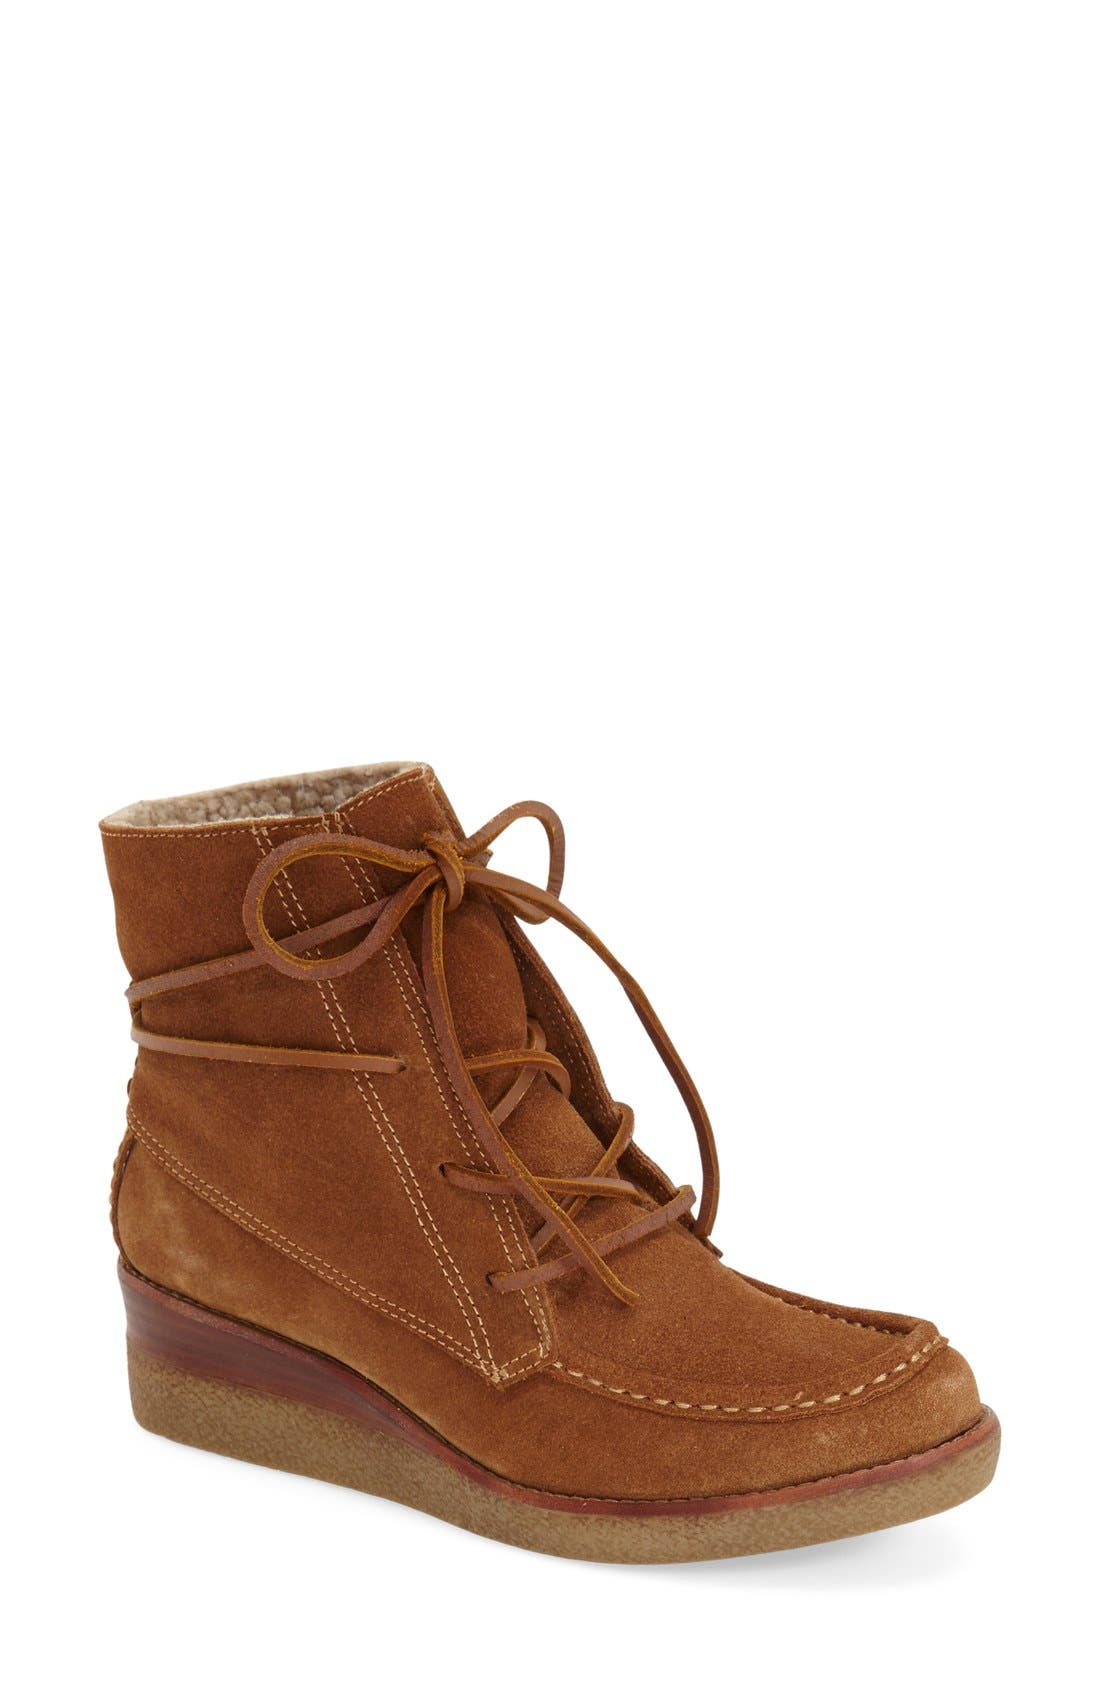 Alternate Image 1 Selected - Dolce Vita 'Sylvia' Lace Up Bootie (Women)